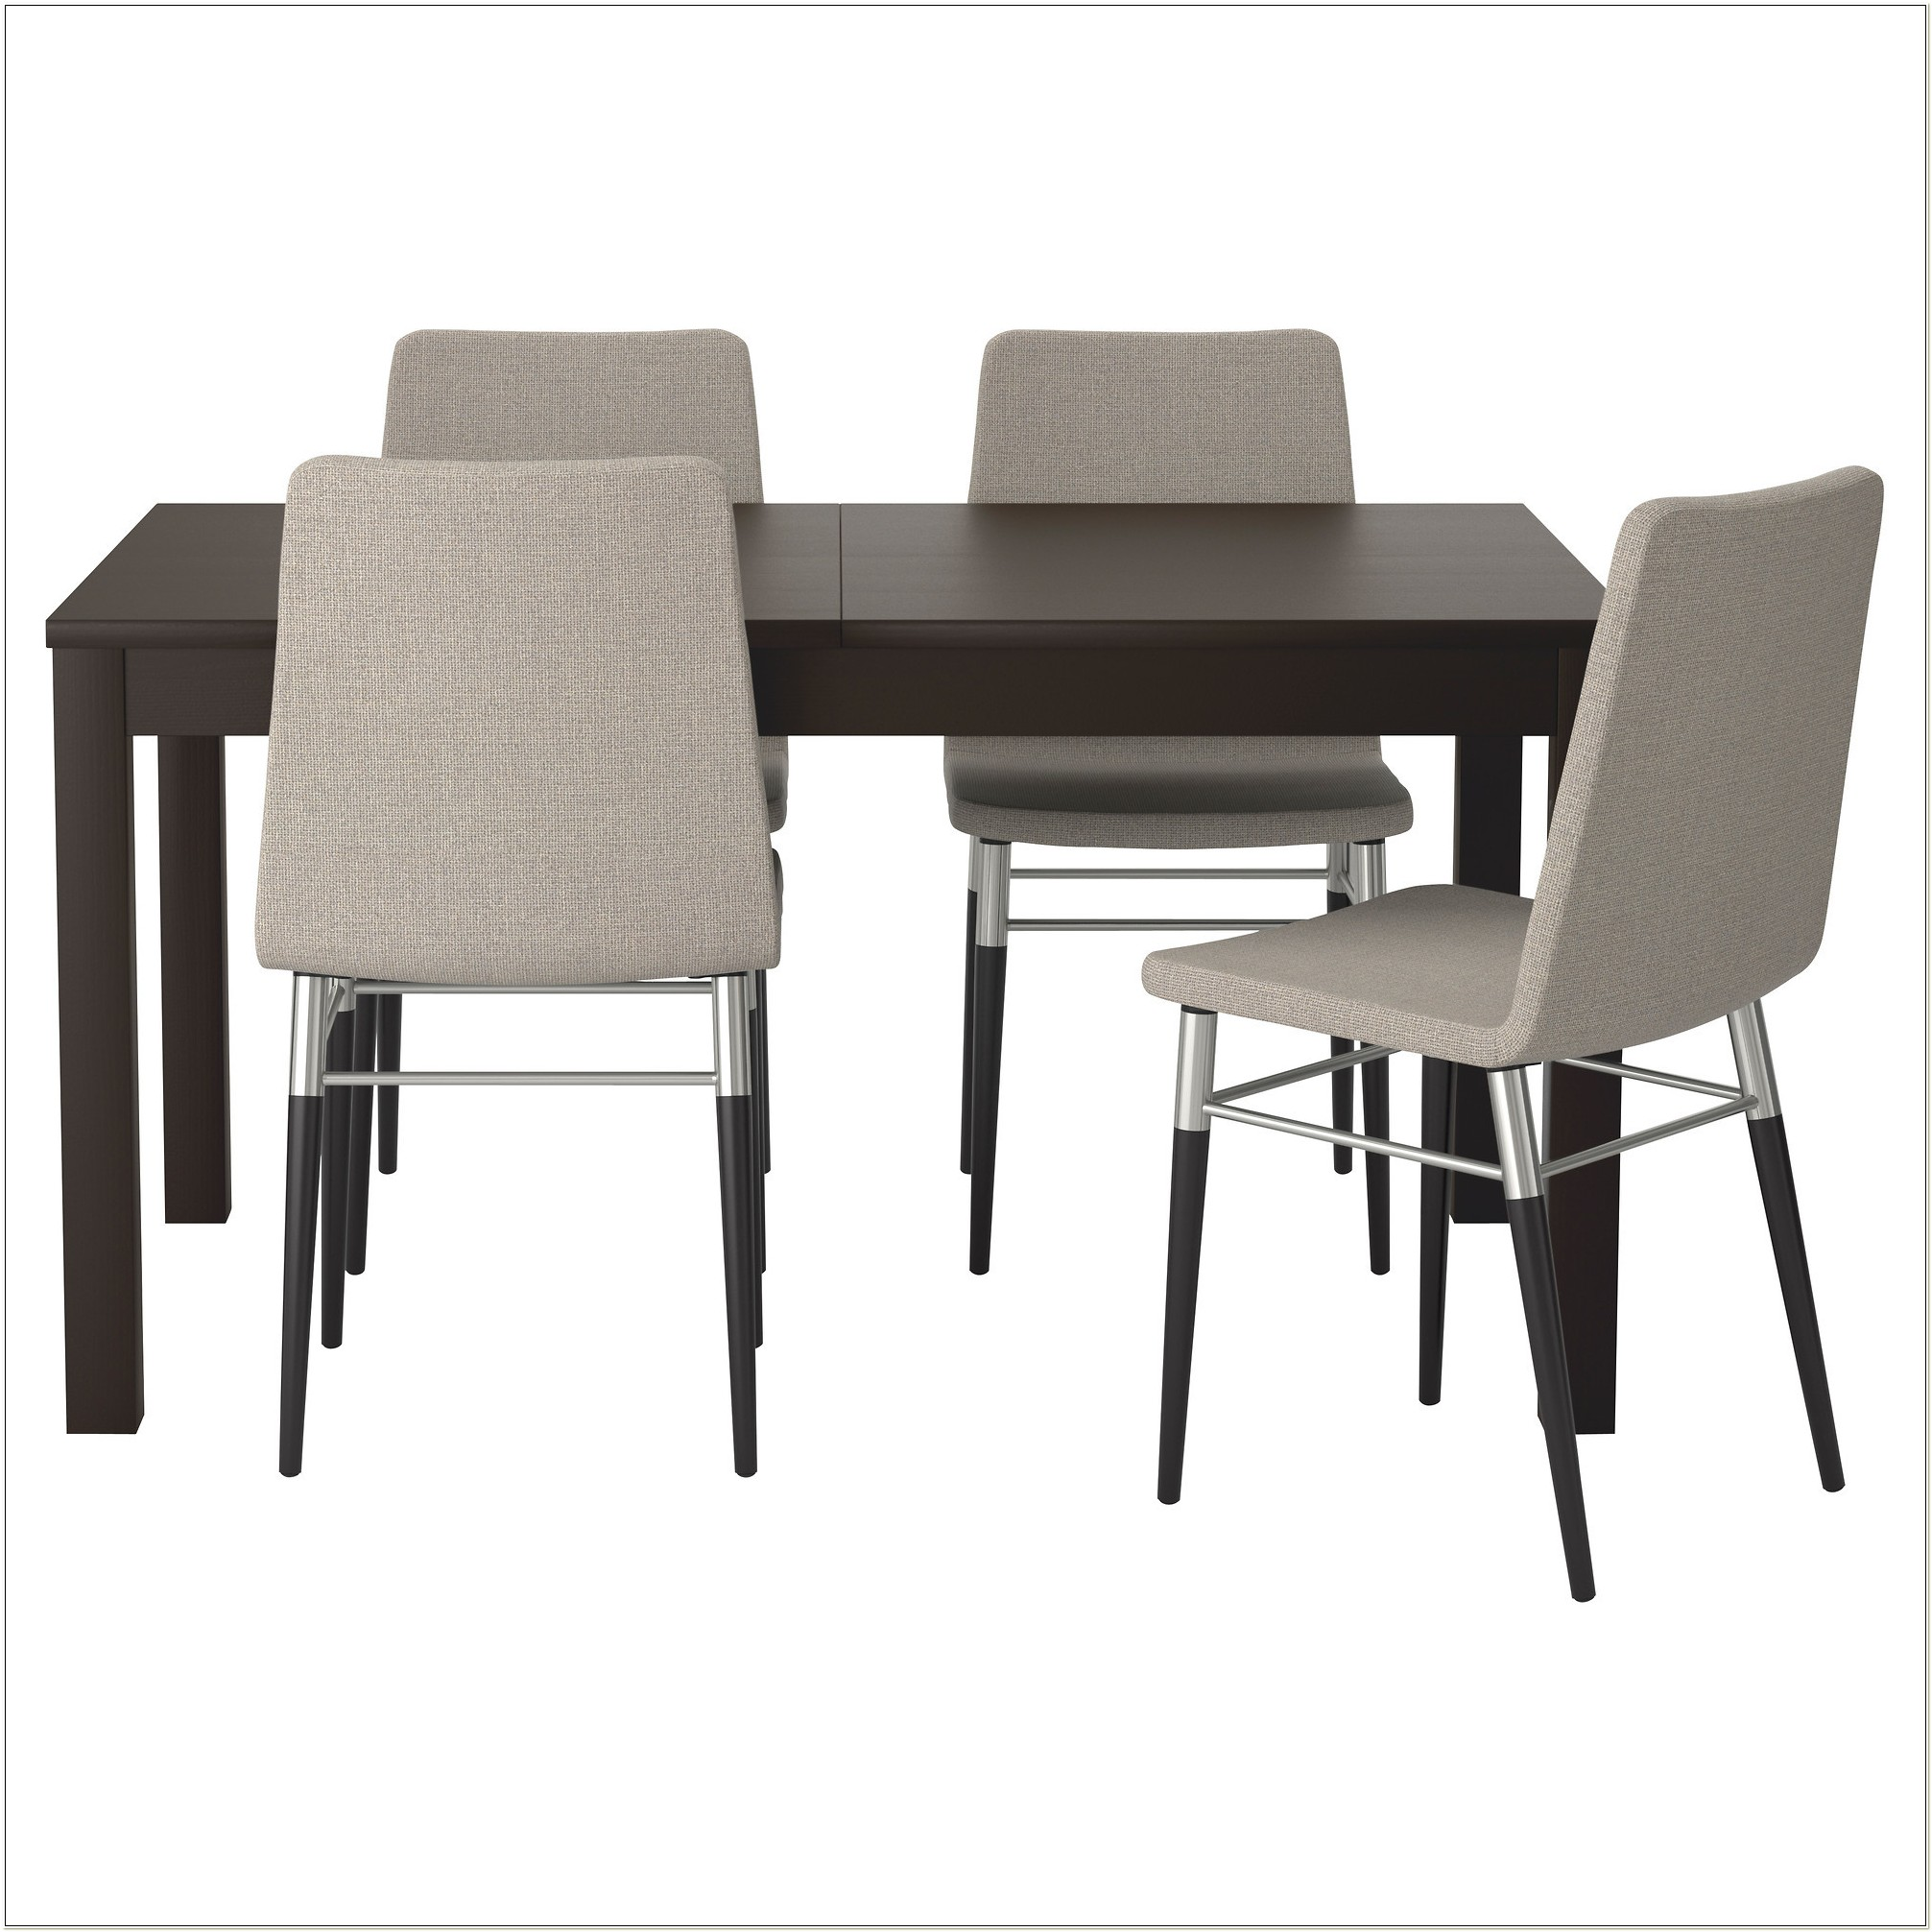 Ikea Dining Room Table And Chairs Set